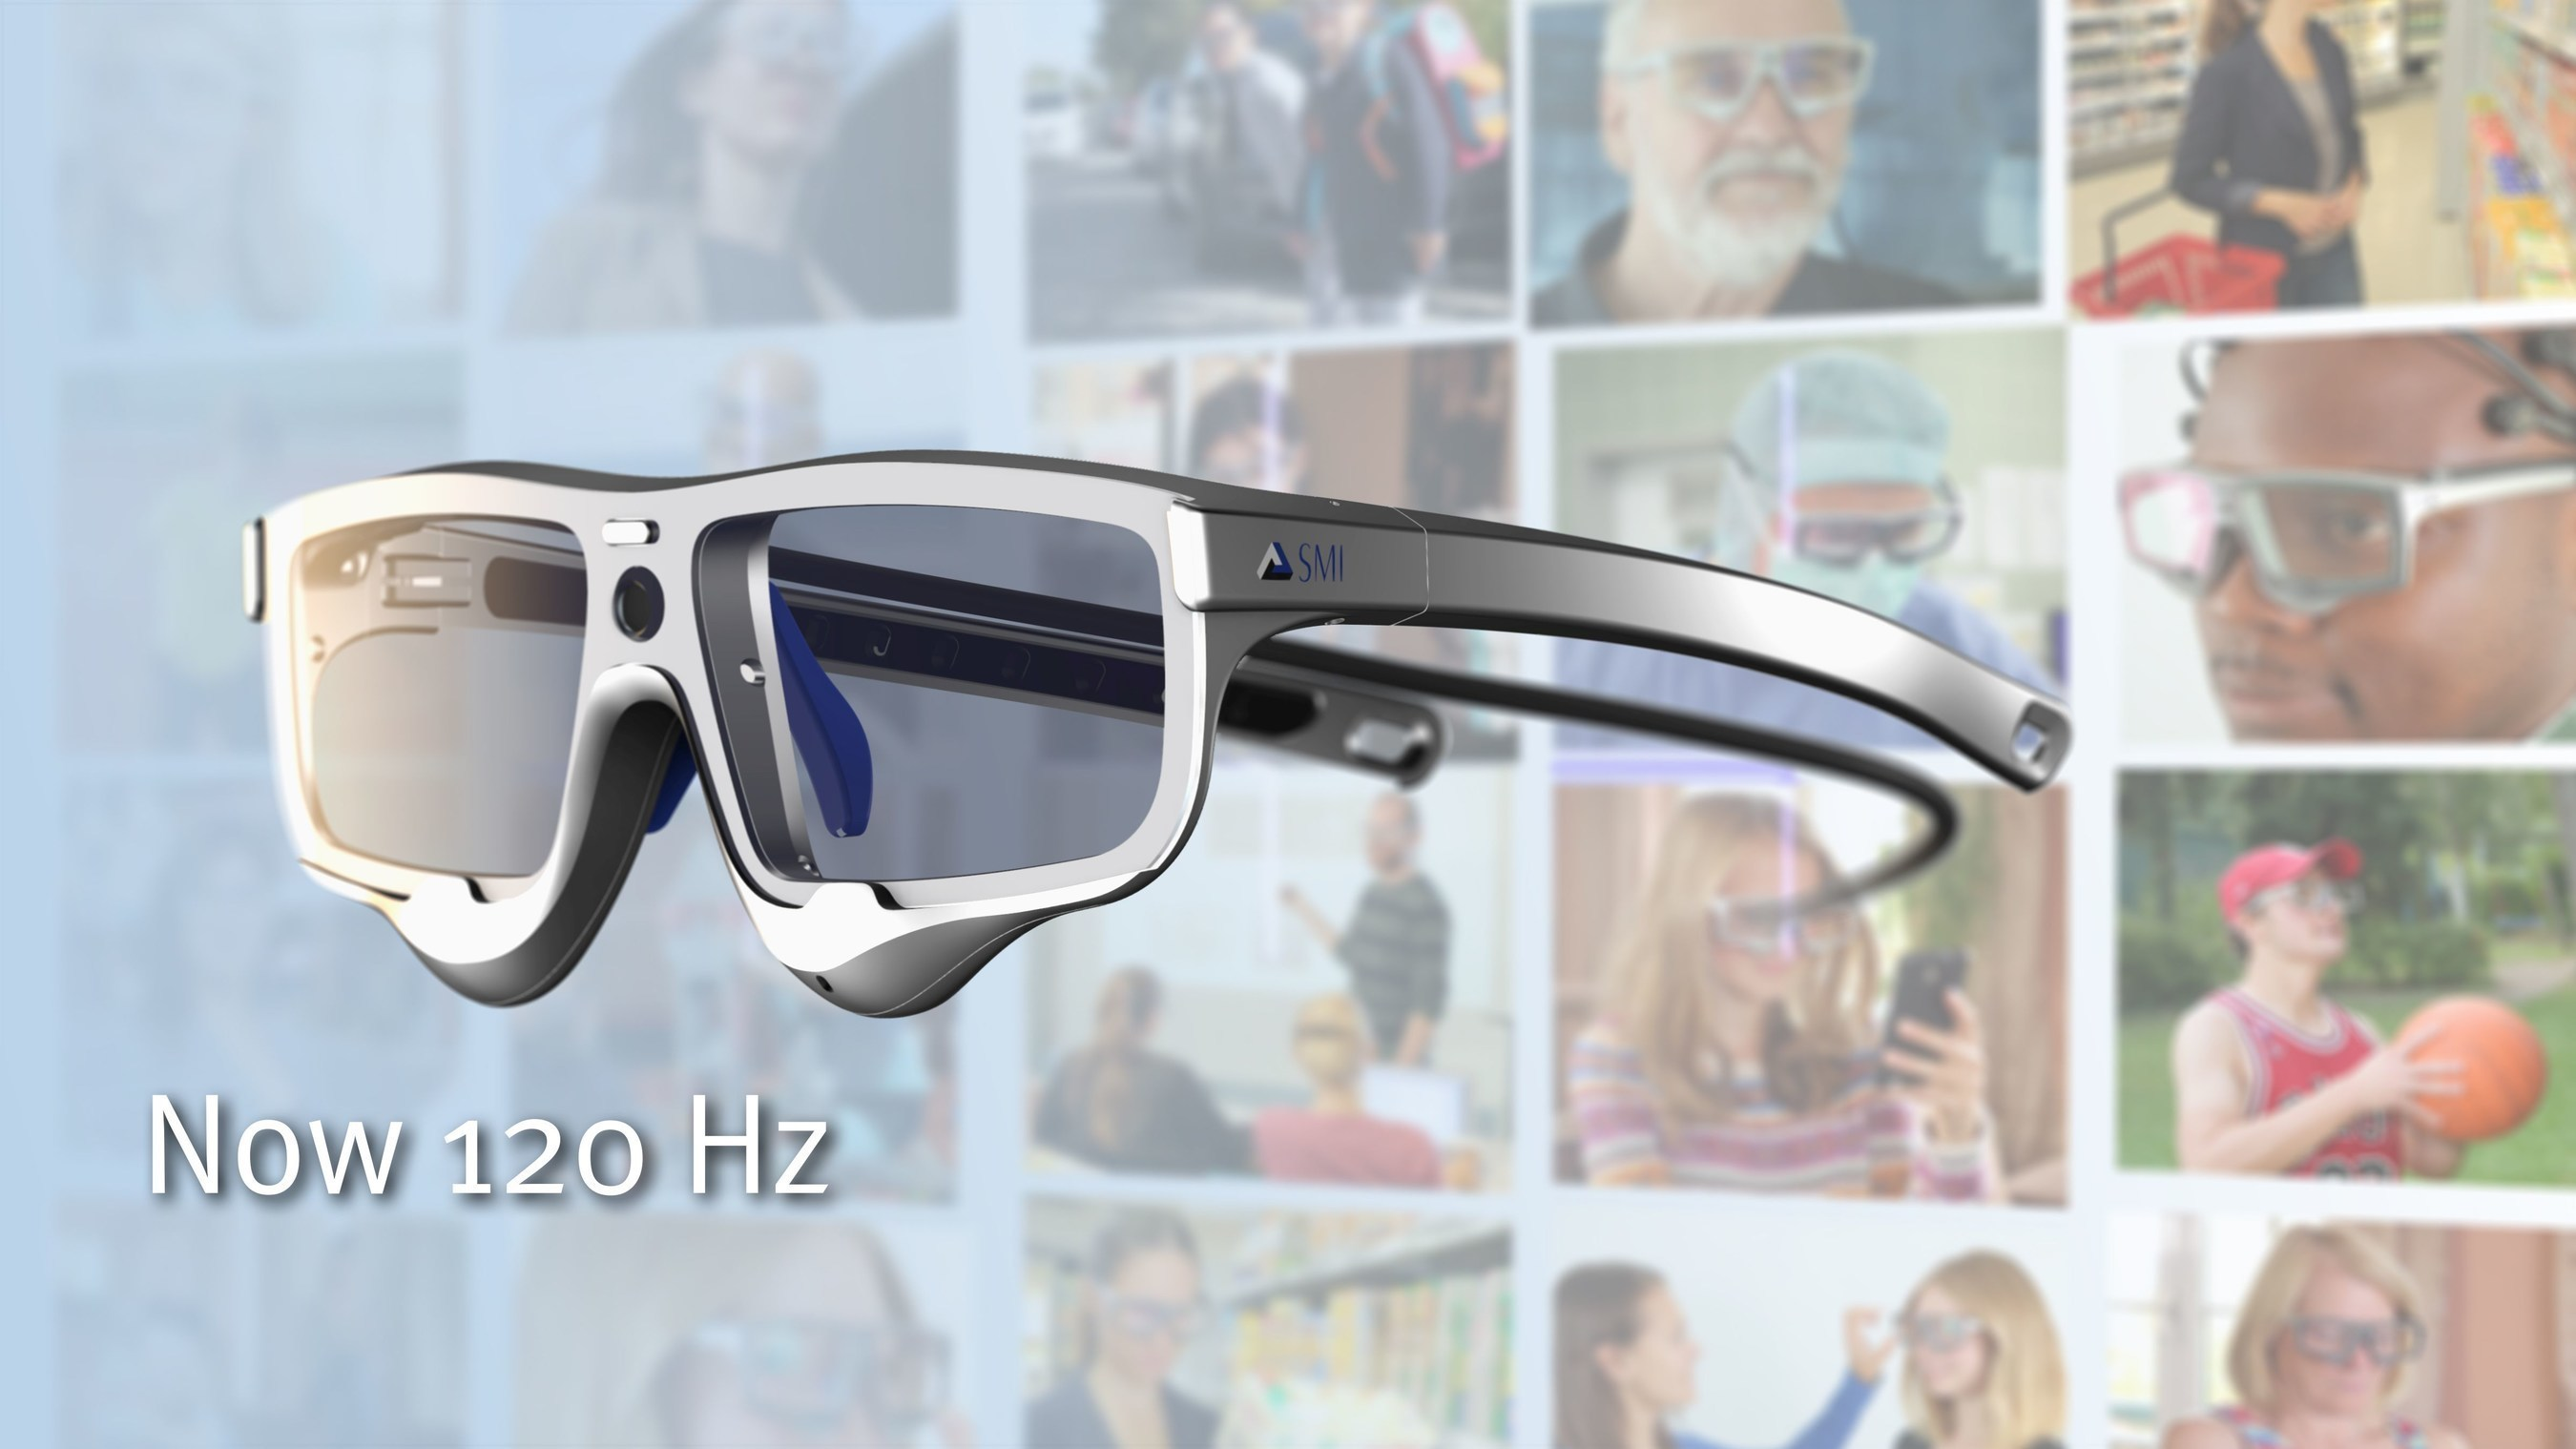 Eye Tracking Glasses at 120 Hz in 'Good Agreement' with 1000 Hz Systems, Trial Finds